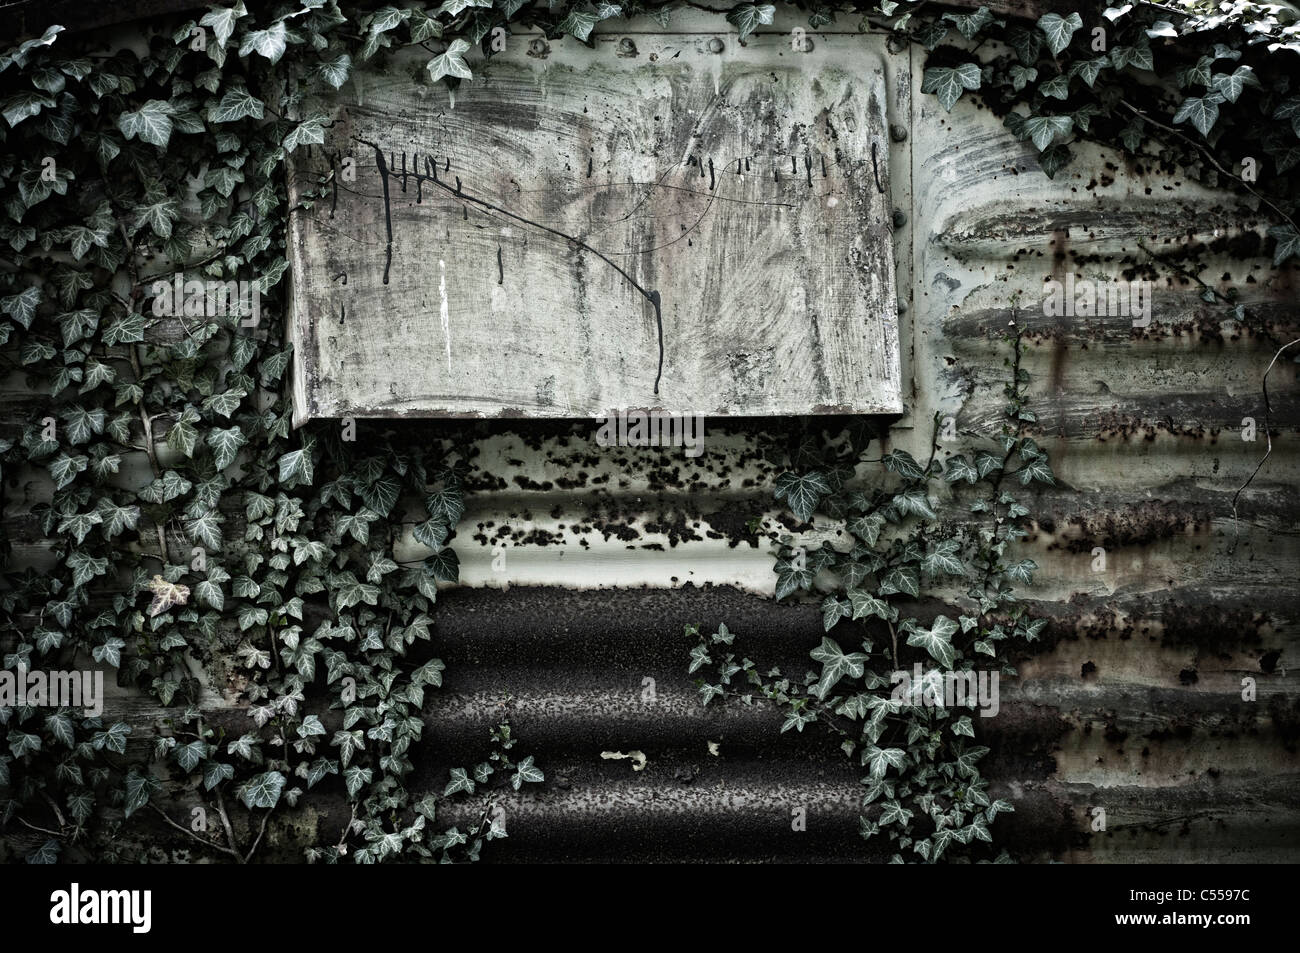 Ventilation of a corrugated iron shed - Stock Image